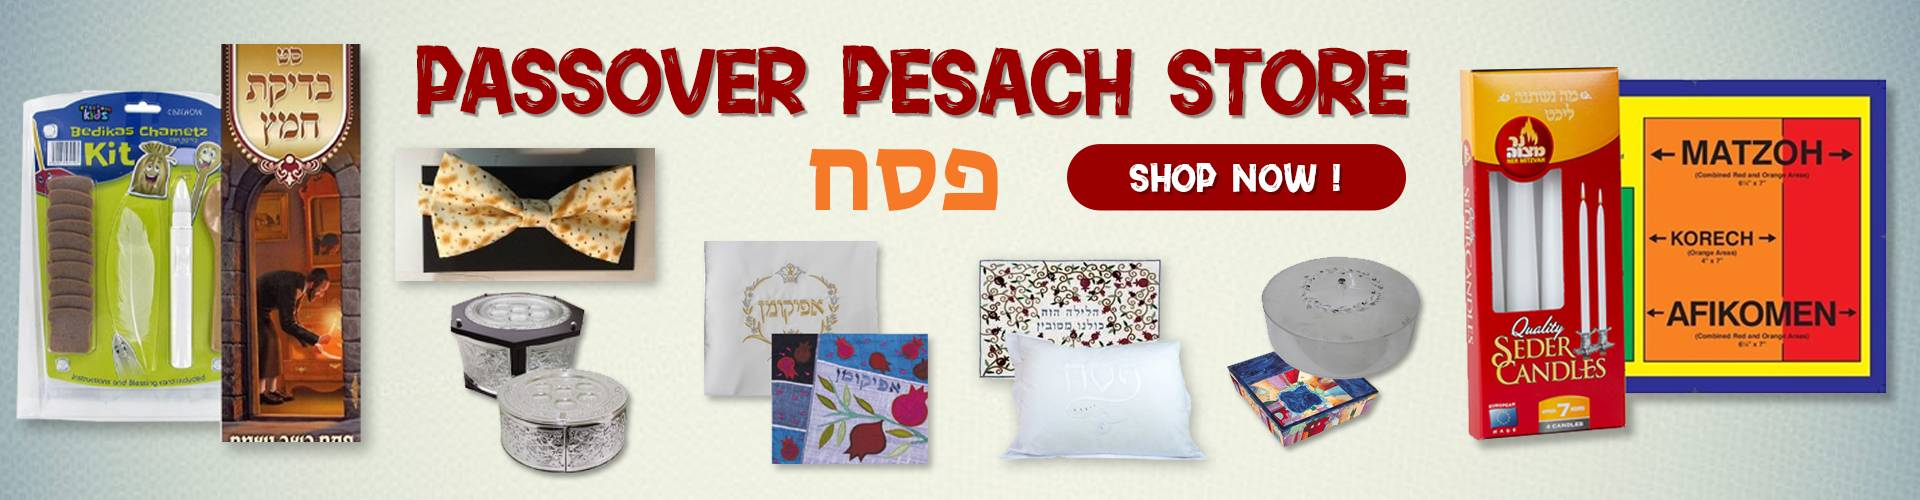 Passover store banner